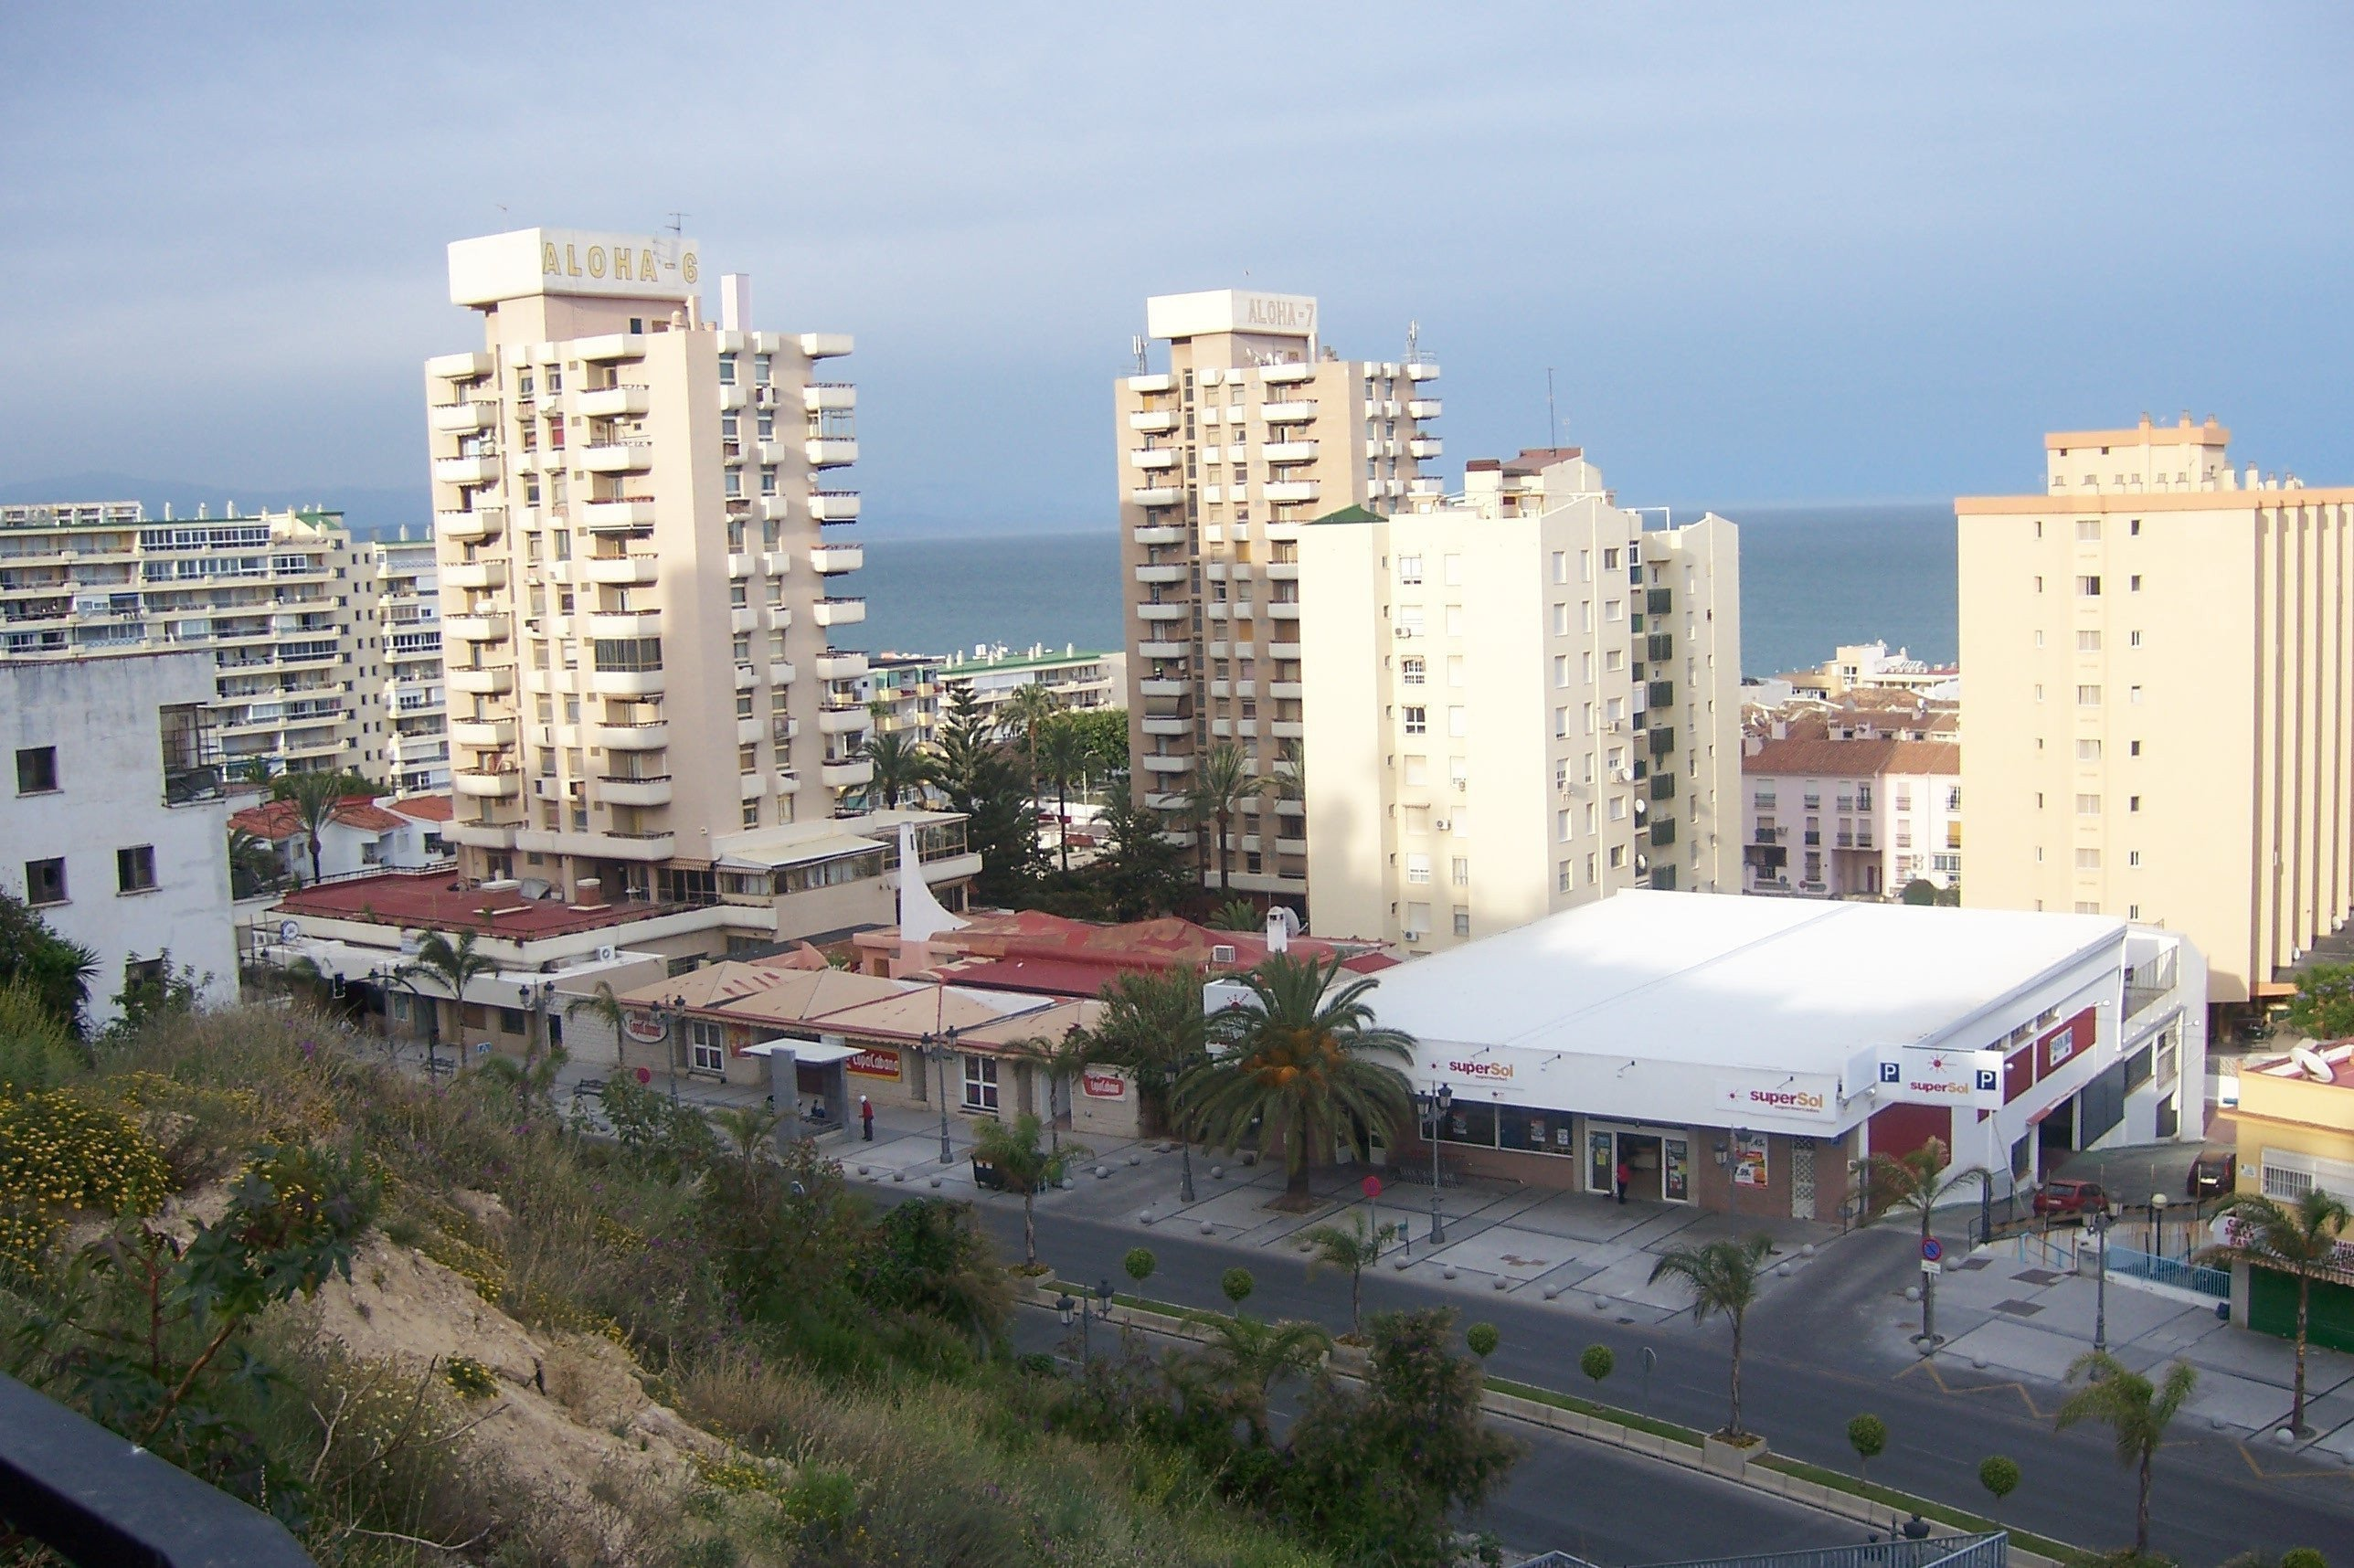 Sale property abroad Apartments in Spain, Torremolinos